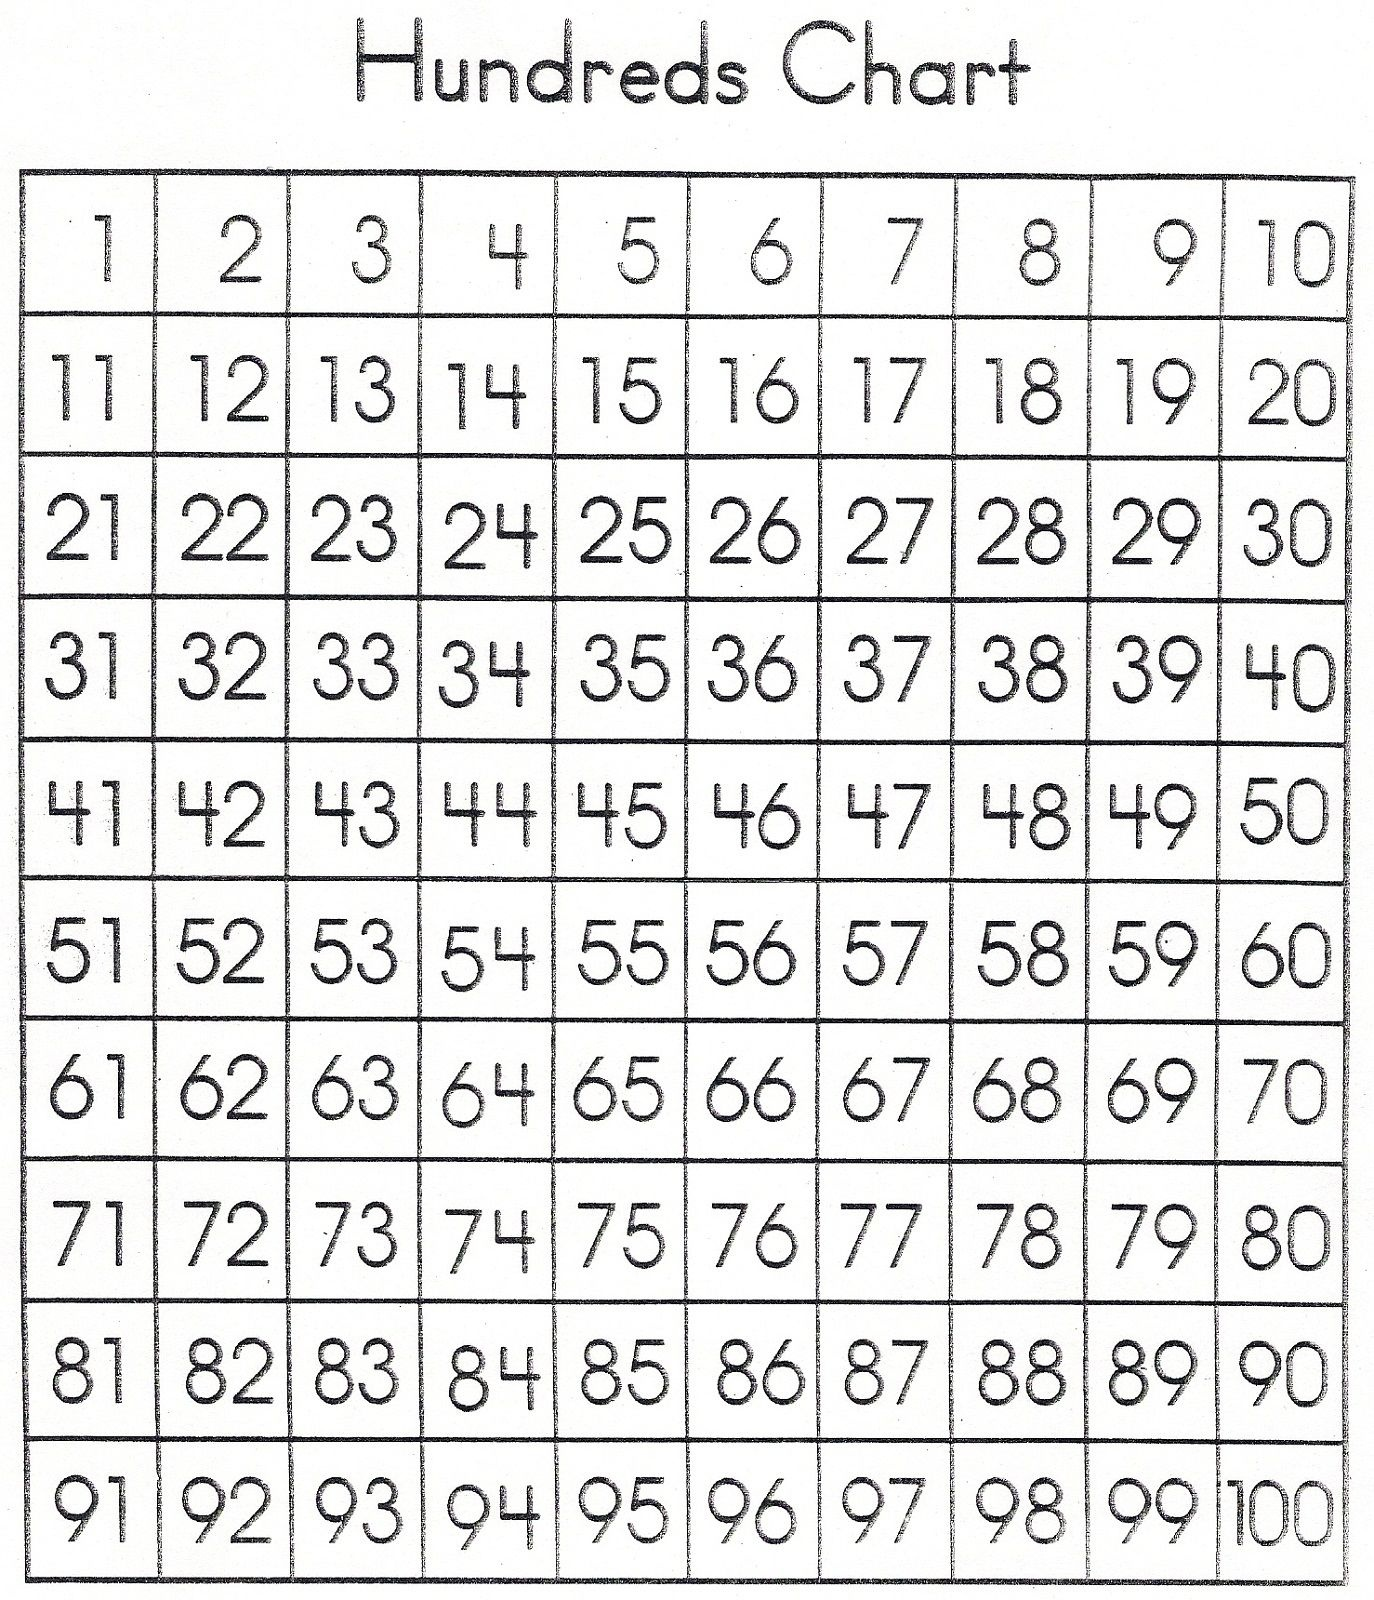 Number Sheet 1-100 To Print   Math Worksheets For Kids   100 Number - Free Printable Blank 1 120 Chart